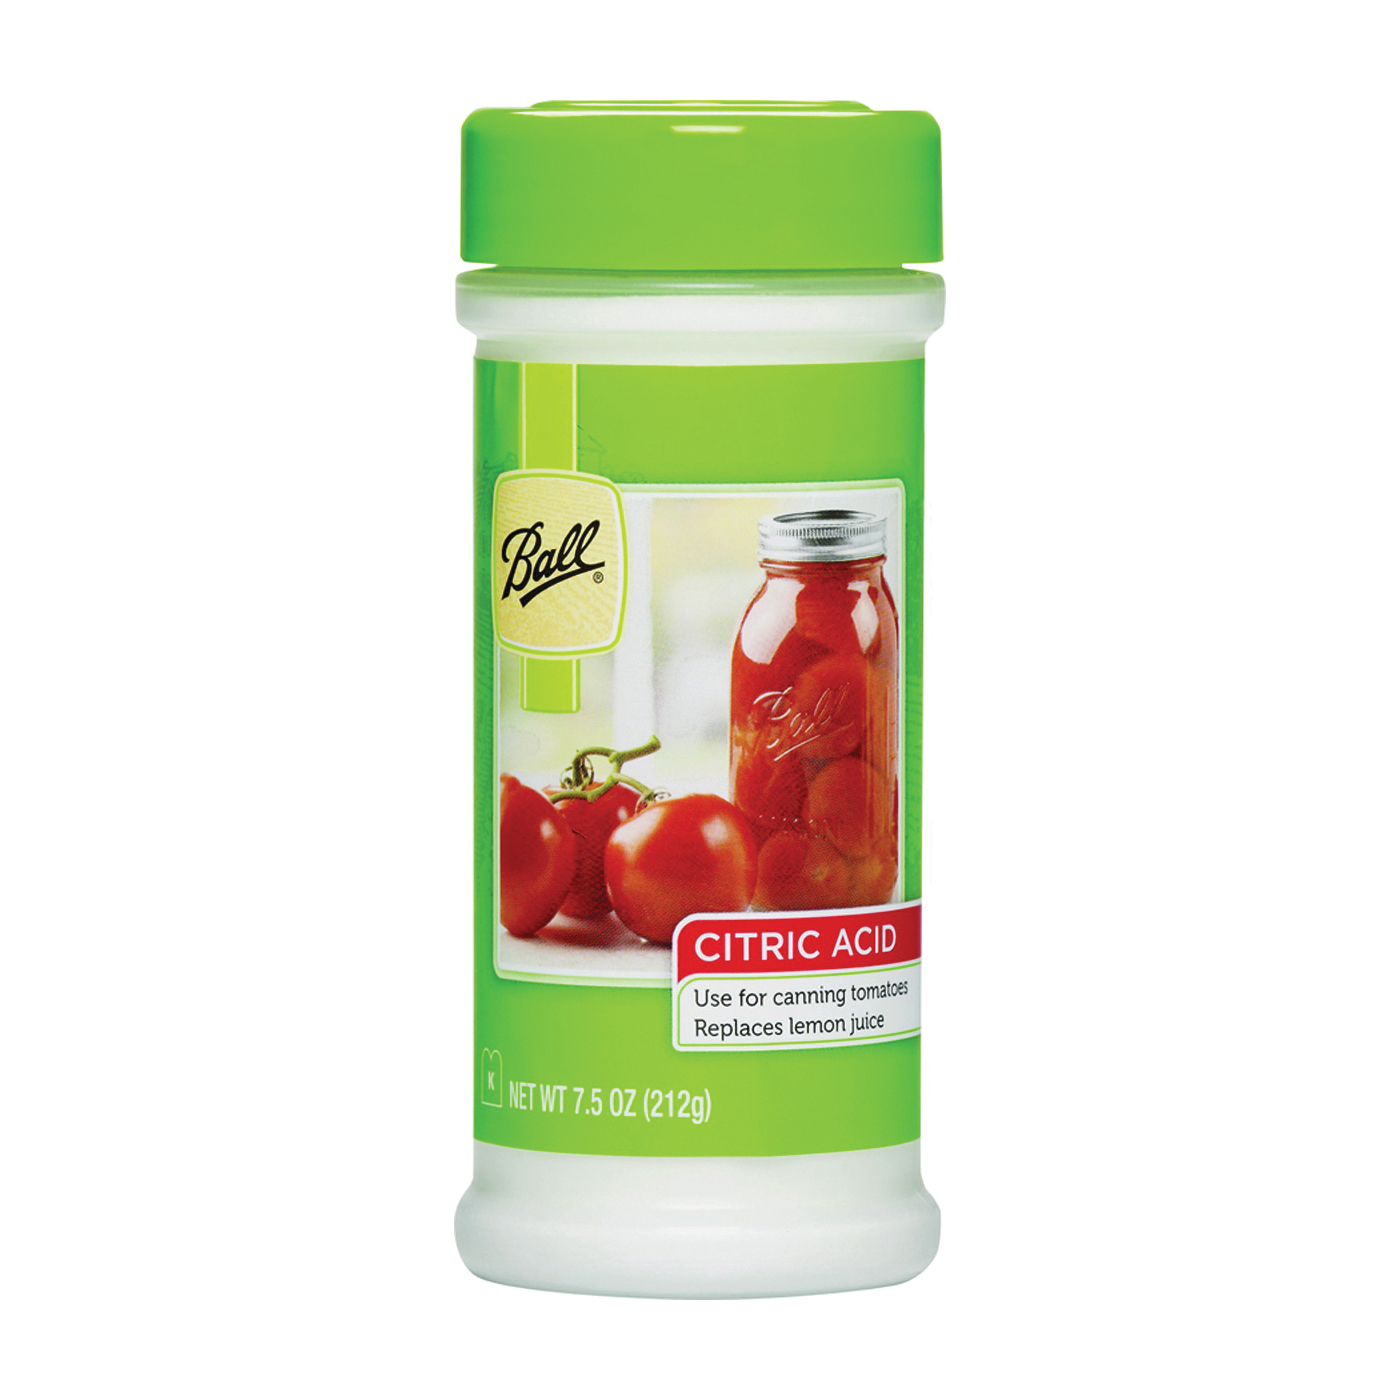 Picture of Ball 55000 Citric Acid, Tomato Flavor, 77 qt Package, Bottle